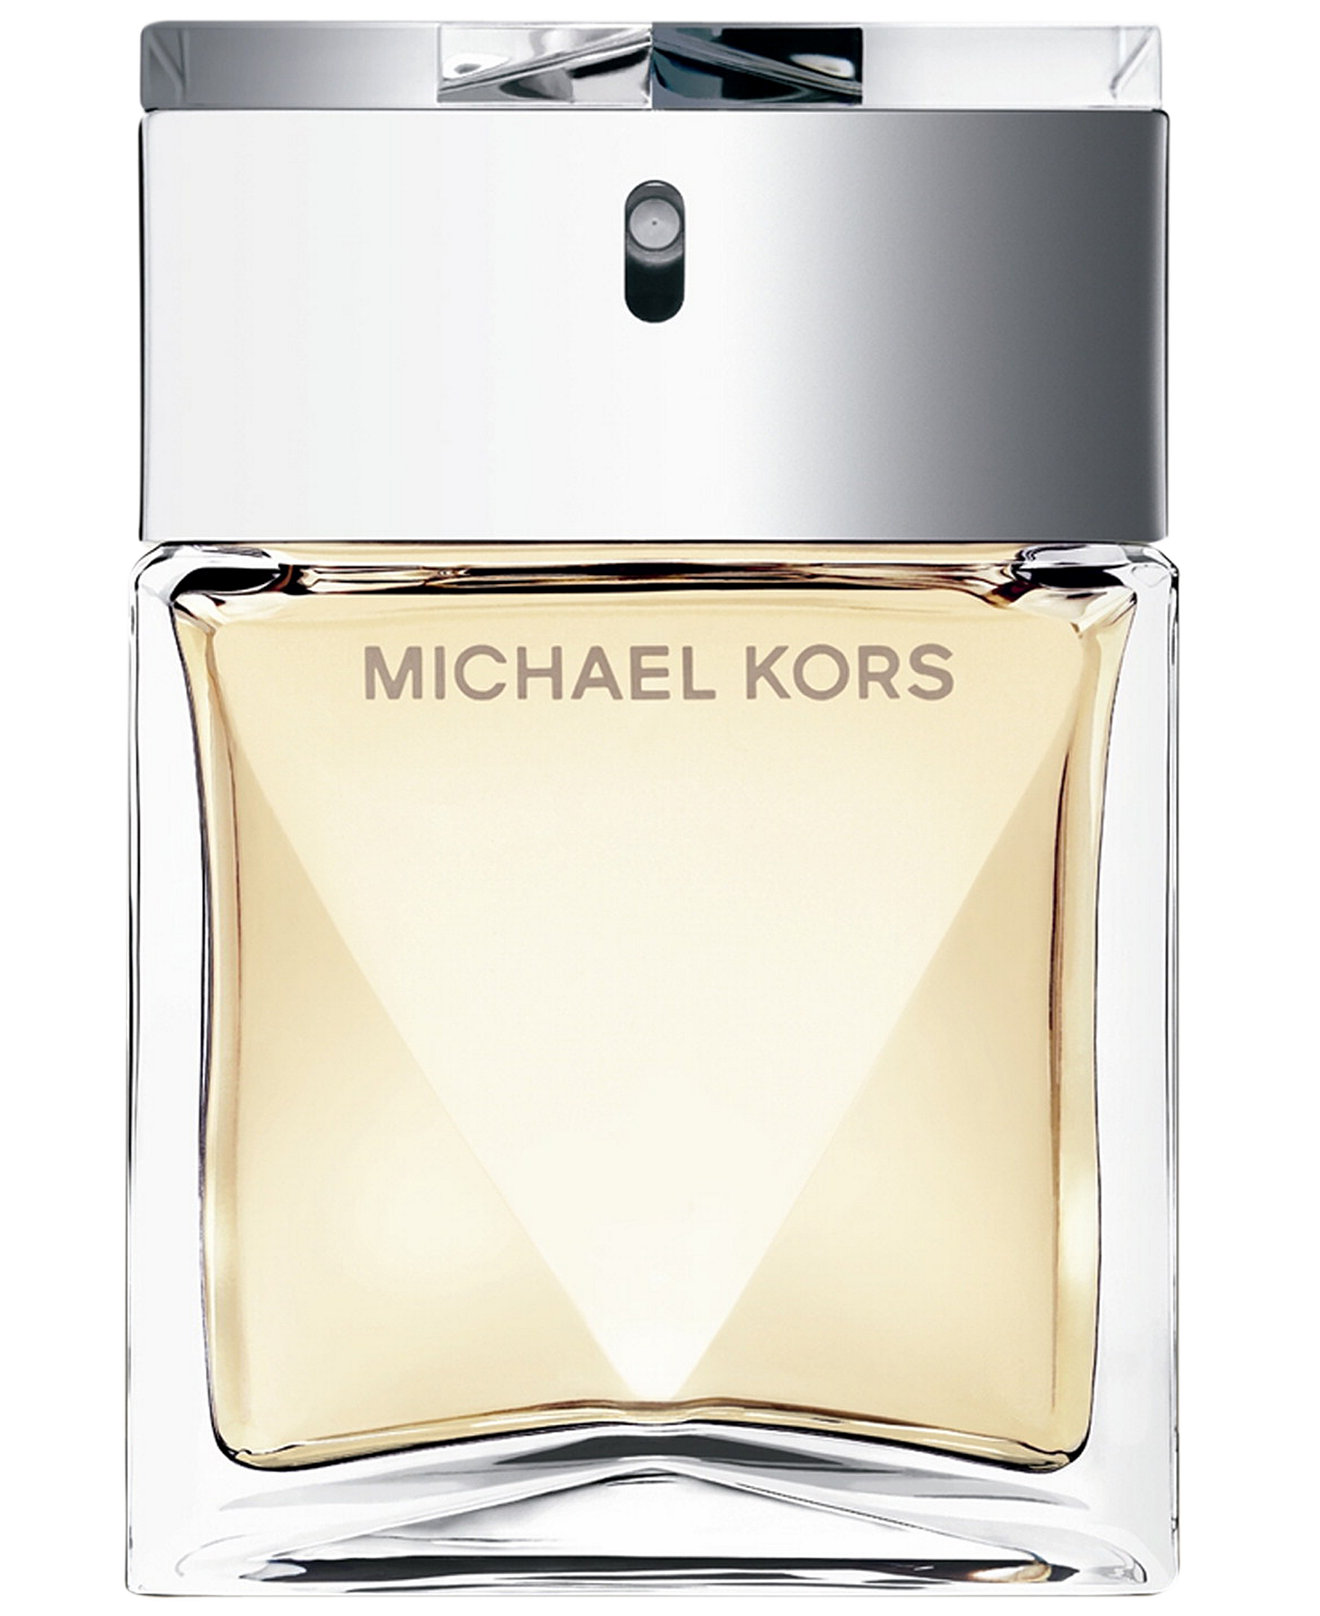 Michael Kors Perfume Collection - Shop All Brands - Beauty - Macy\'s